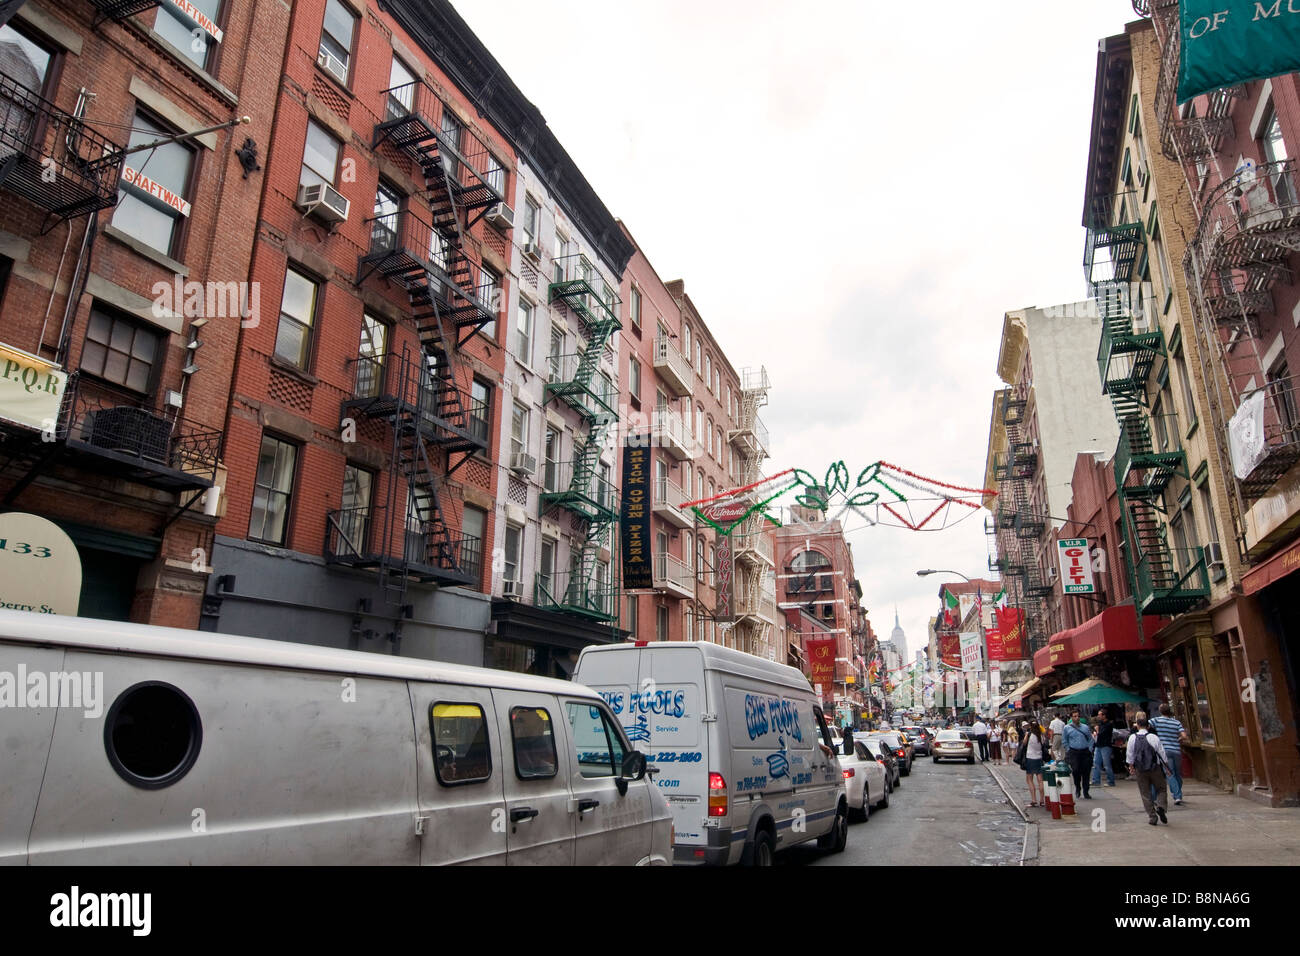 Street scene in Italian neighbourhood of Manhattan known as Little Italy - Stock Image